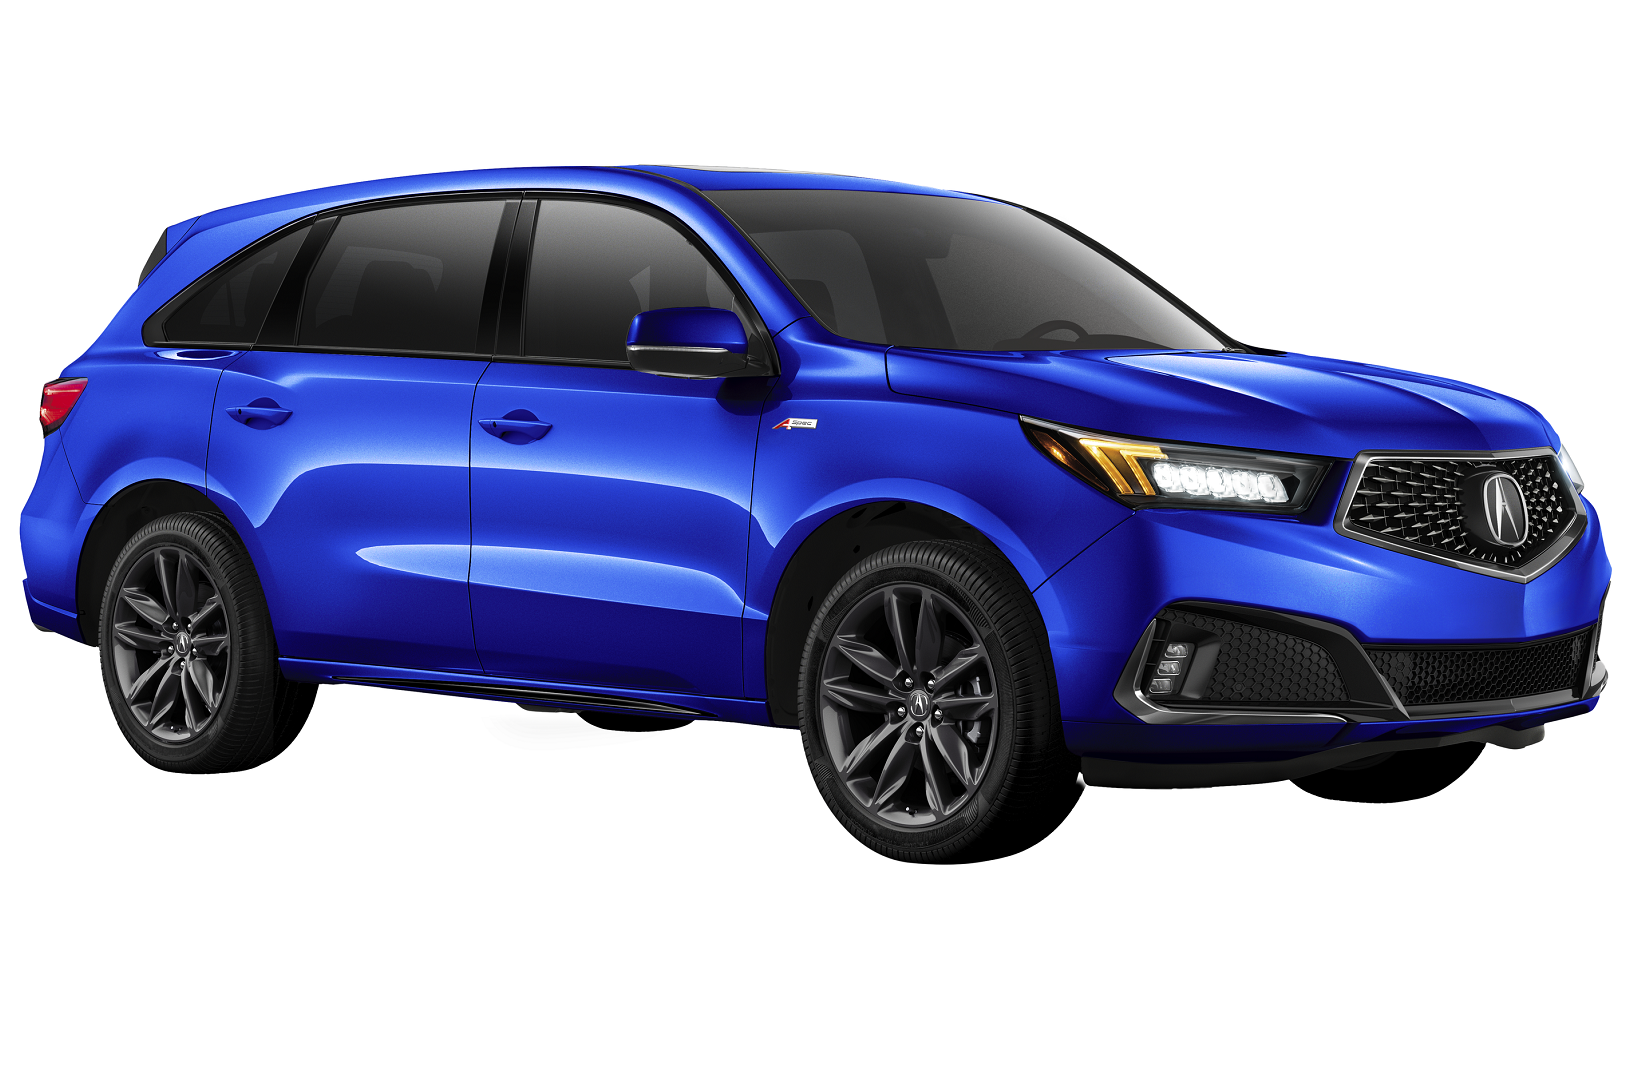 2019 Acura MDX A-SPEC Blue Pearl